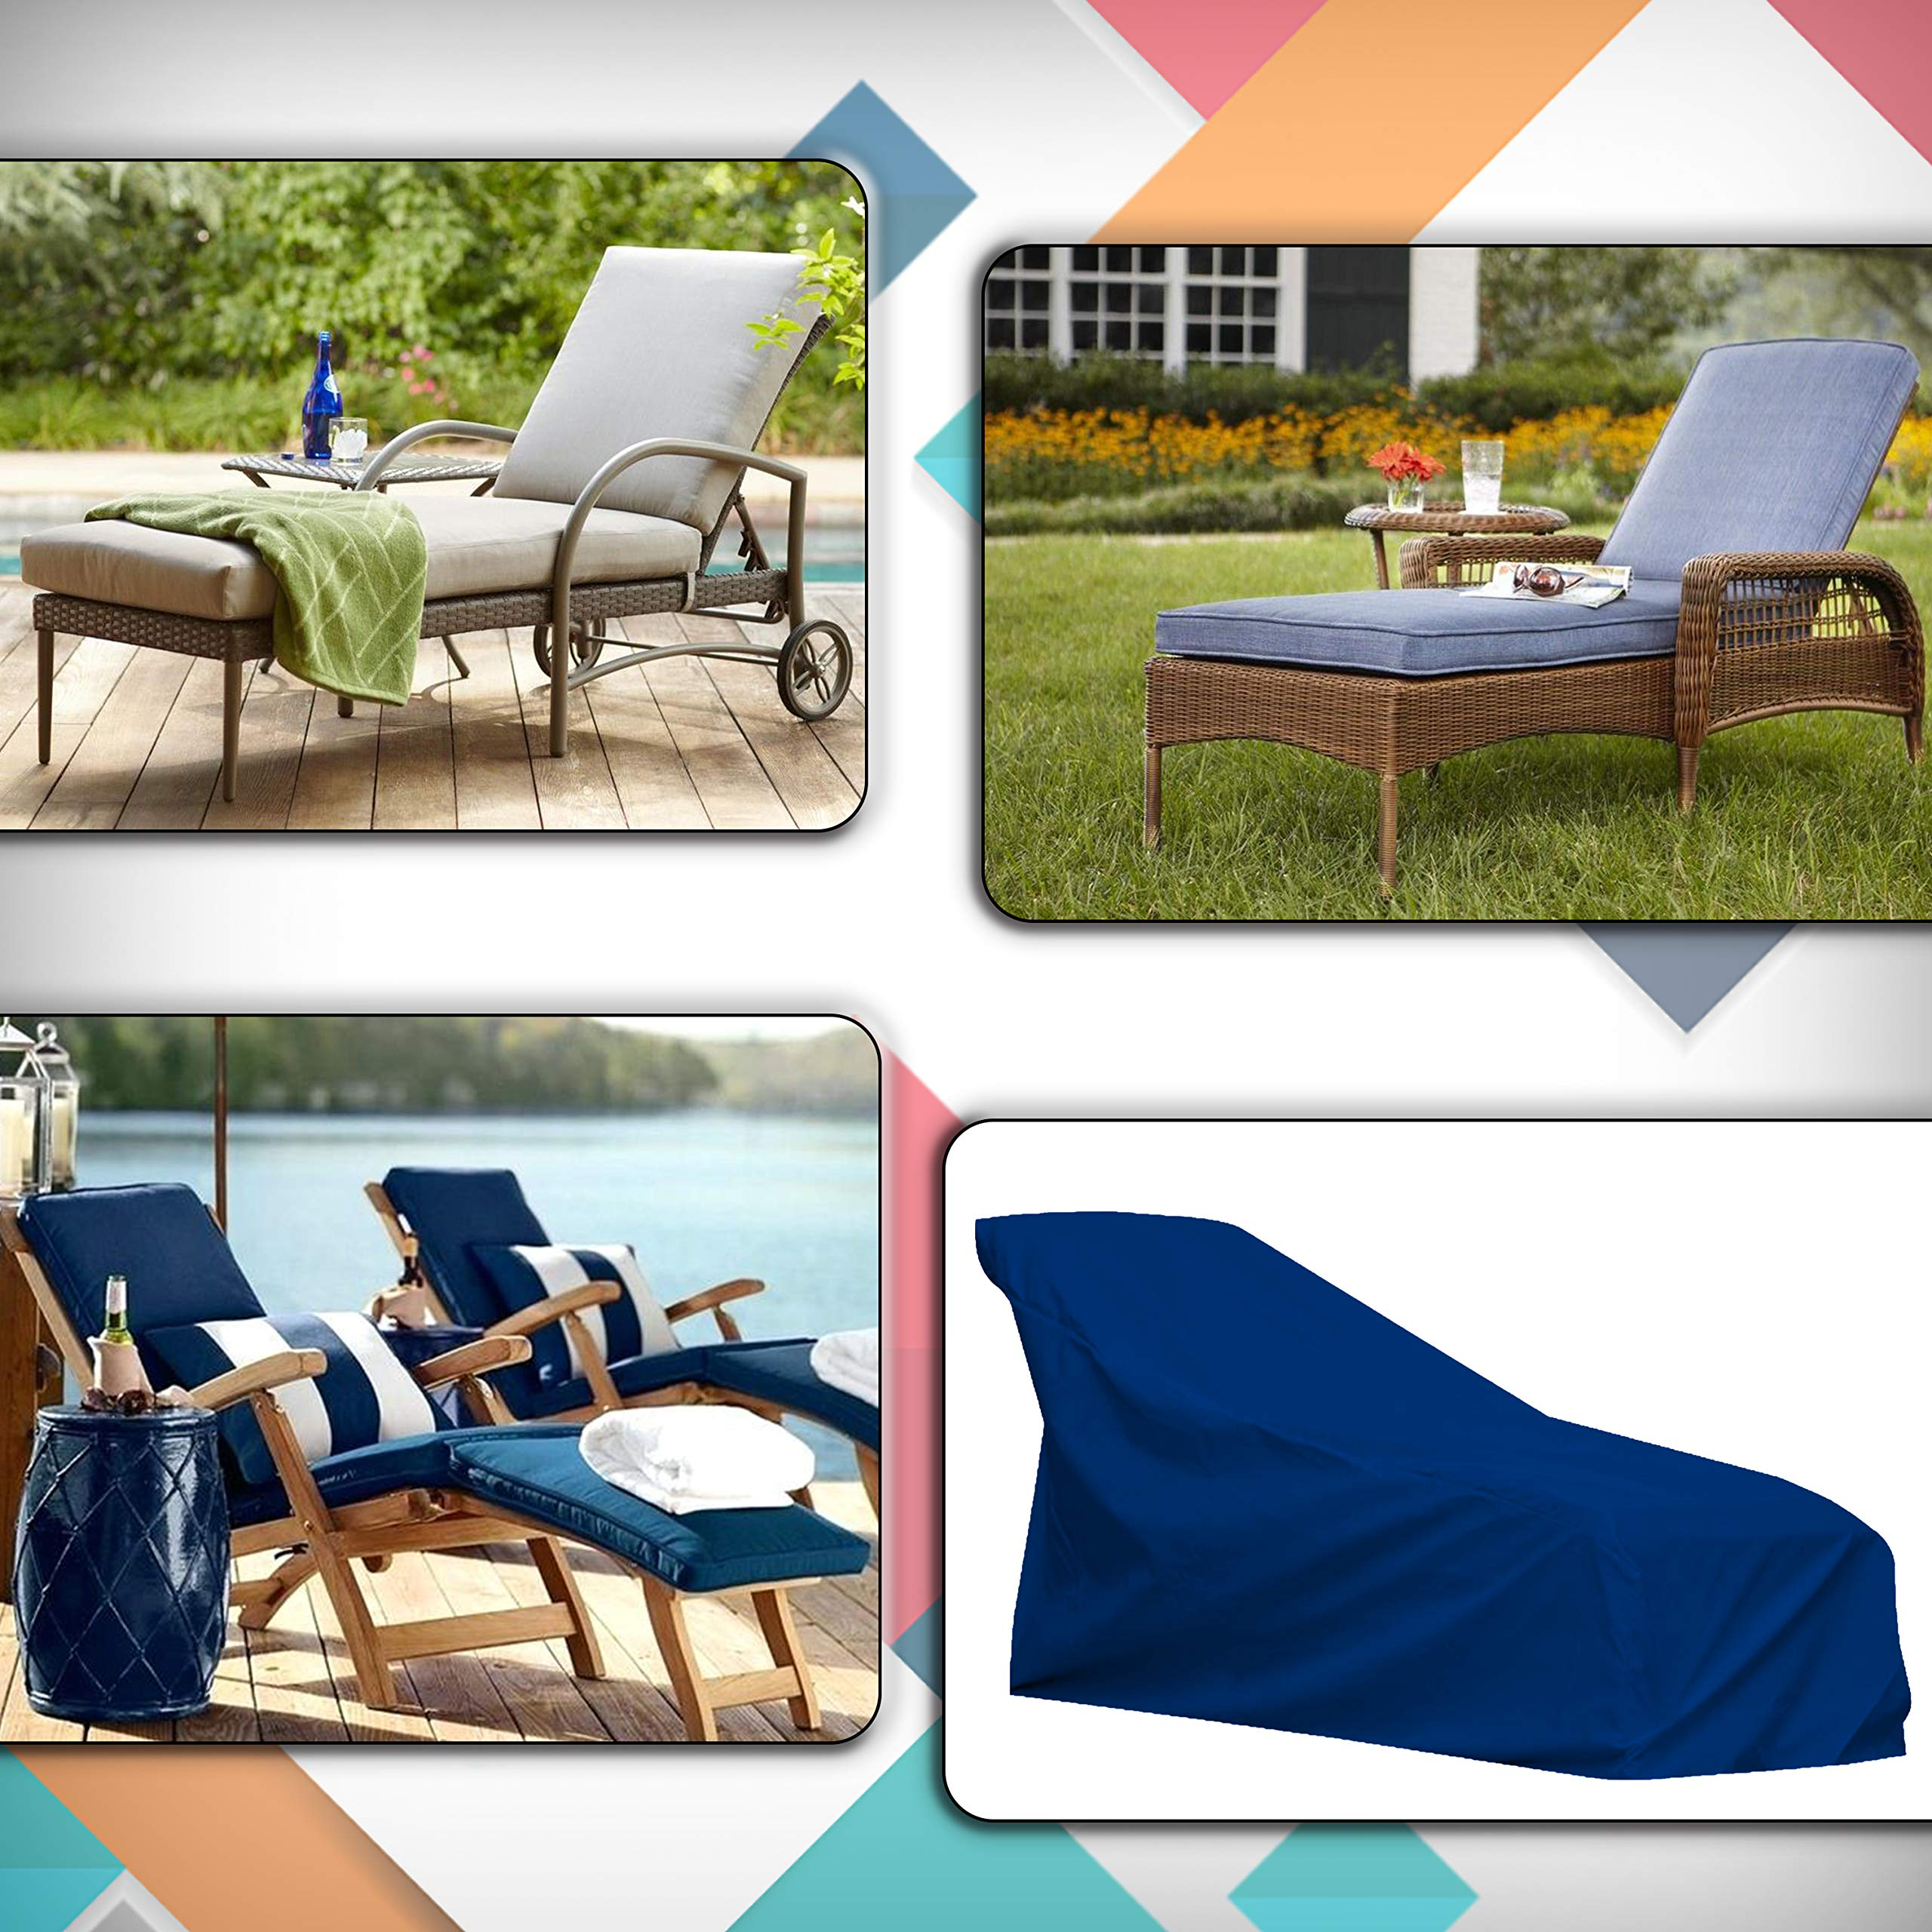 COVERS & ALL Chaise Lounge Cover 18 Oz Waterproof - 100% UV & Weather Resistant Outdoor Chaise Cover PVC Coated with Air Pockets and Drawstring for Snug Fit (80W x 34D x 32H, Blue) by COVERS & ALL (Image #5)